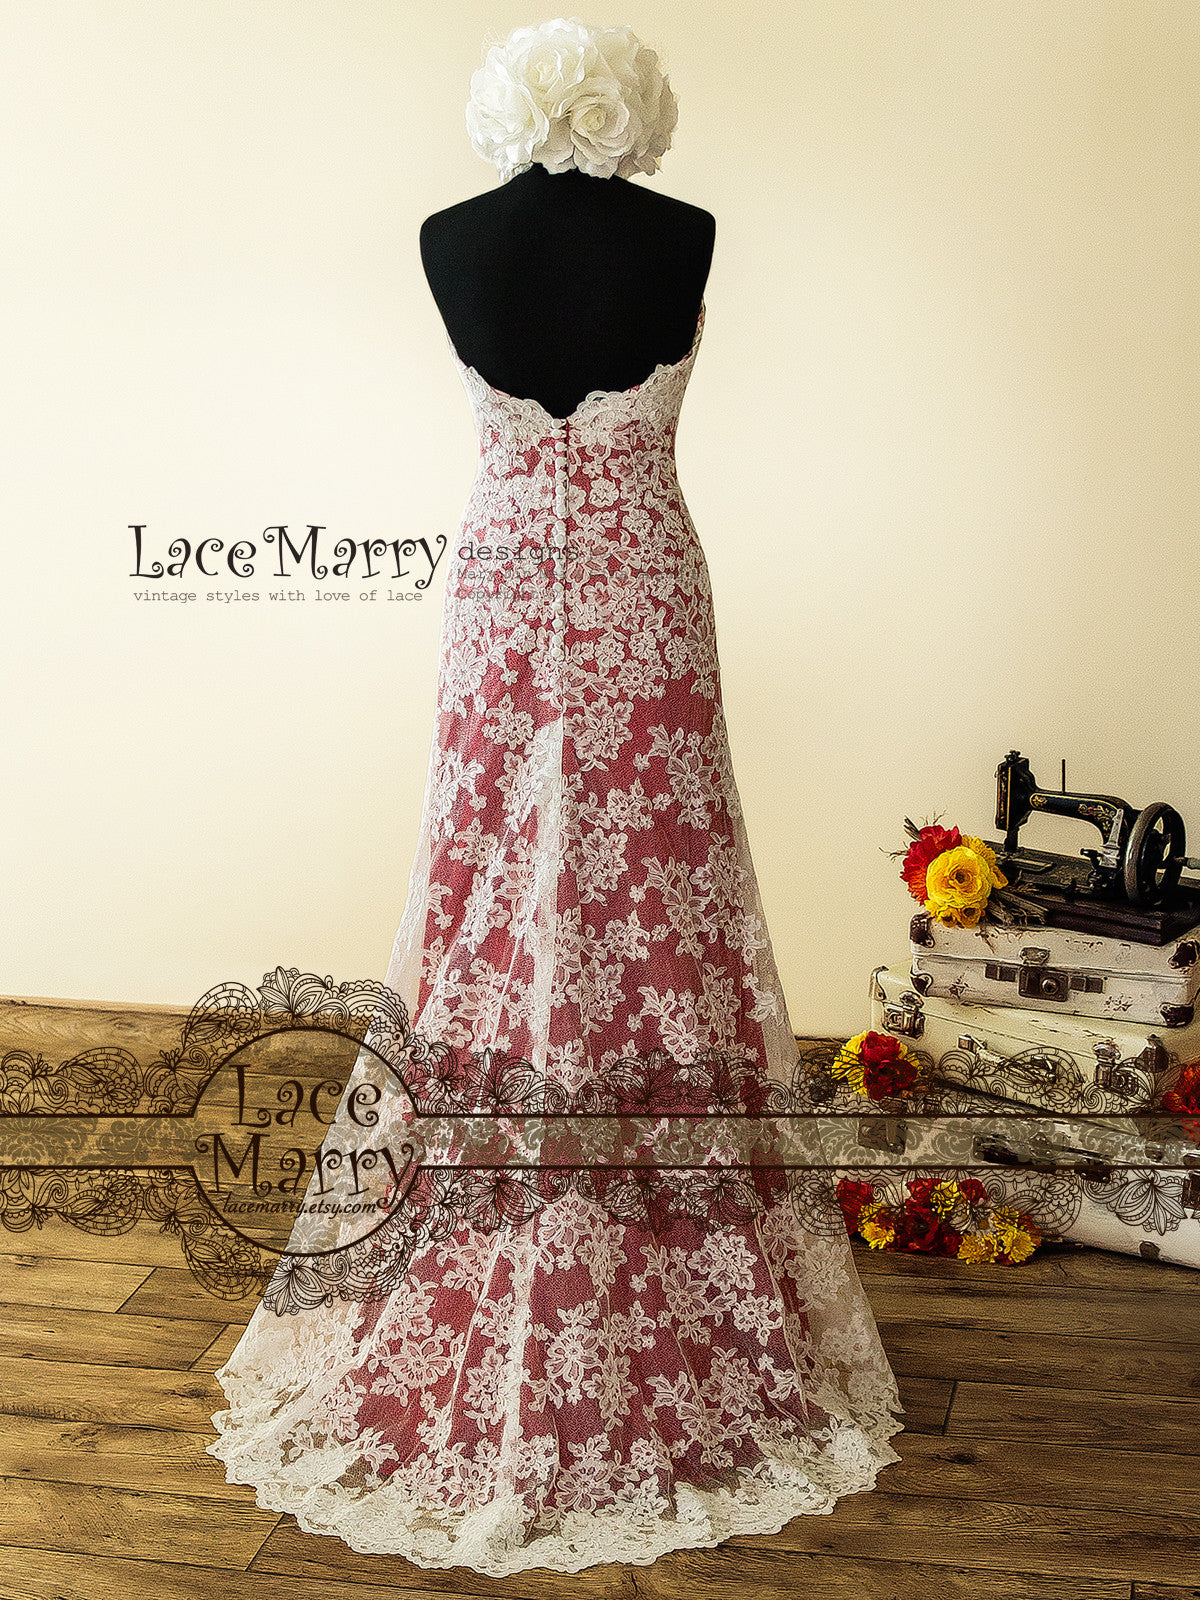 High Low Style Wedding Dress With Dark Red Underlay And Ivory Lace Lacemarry